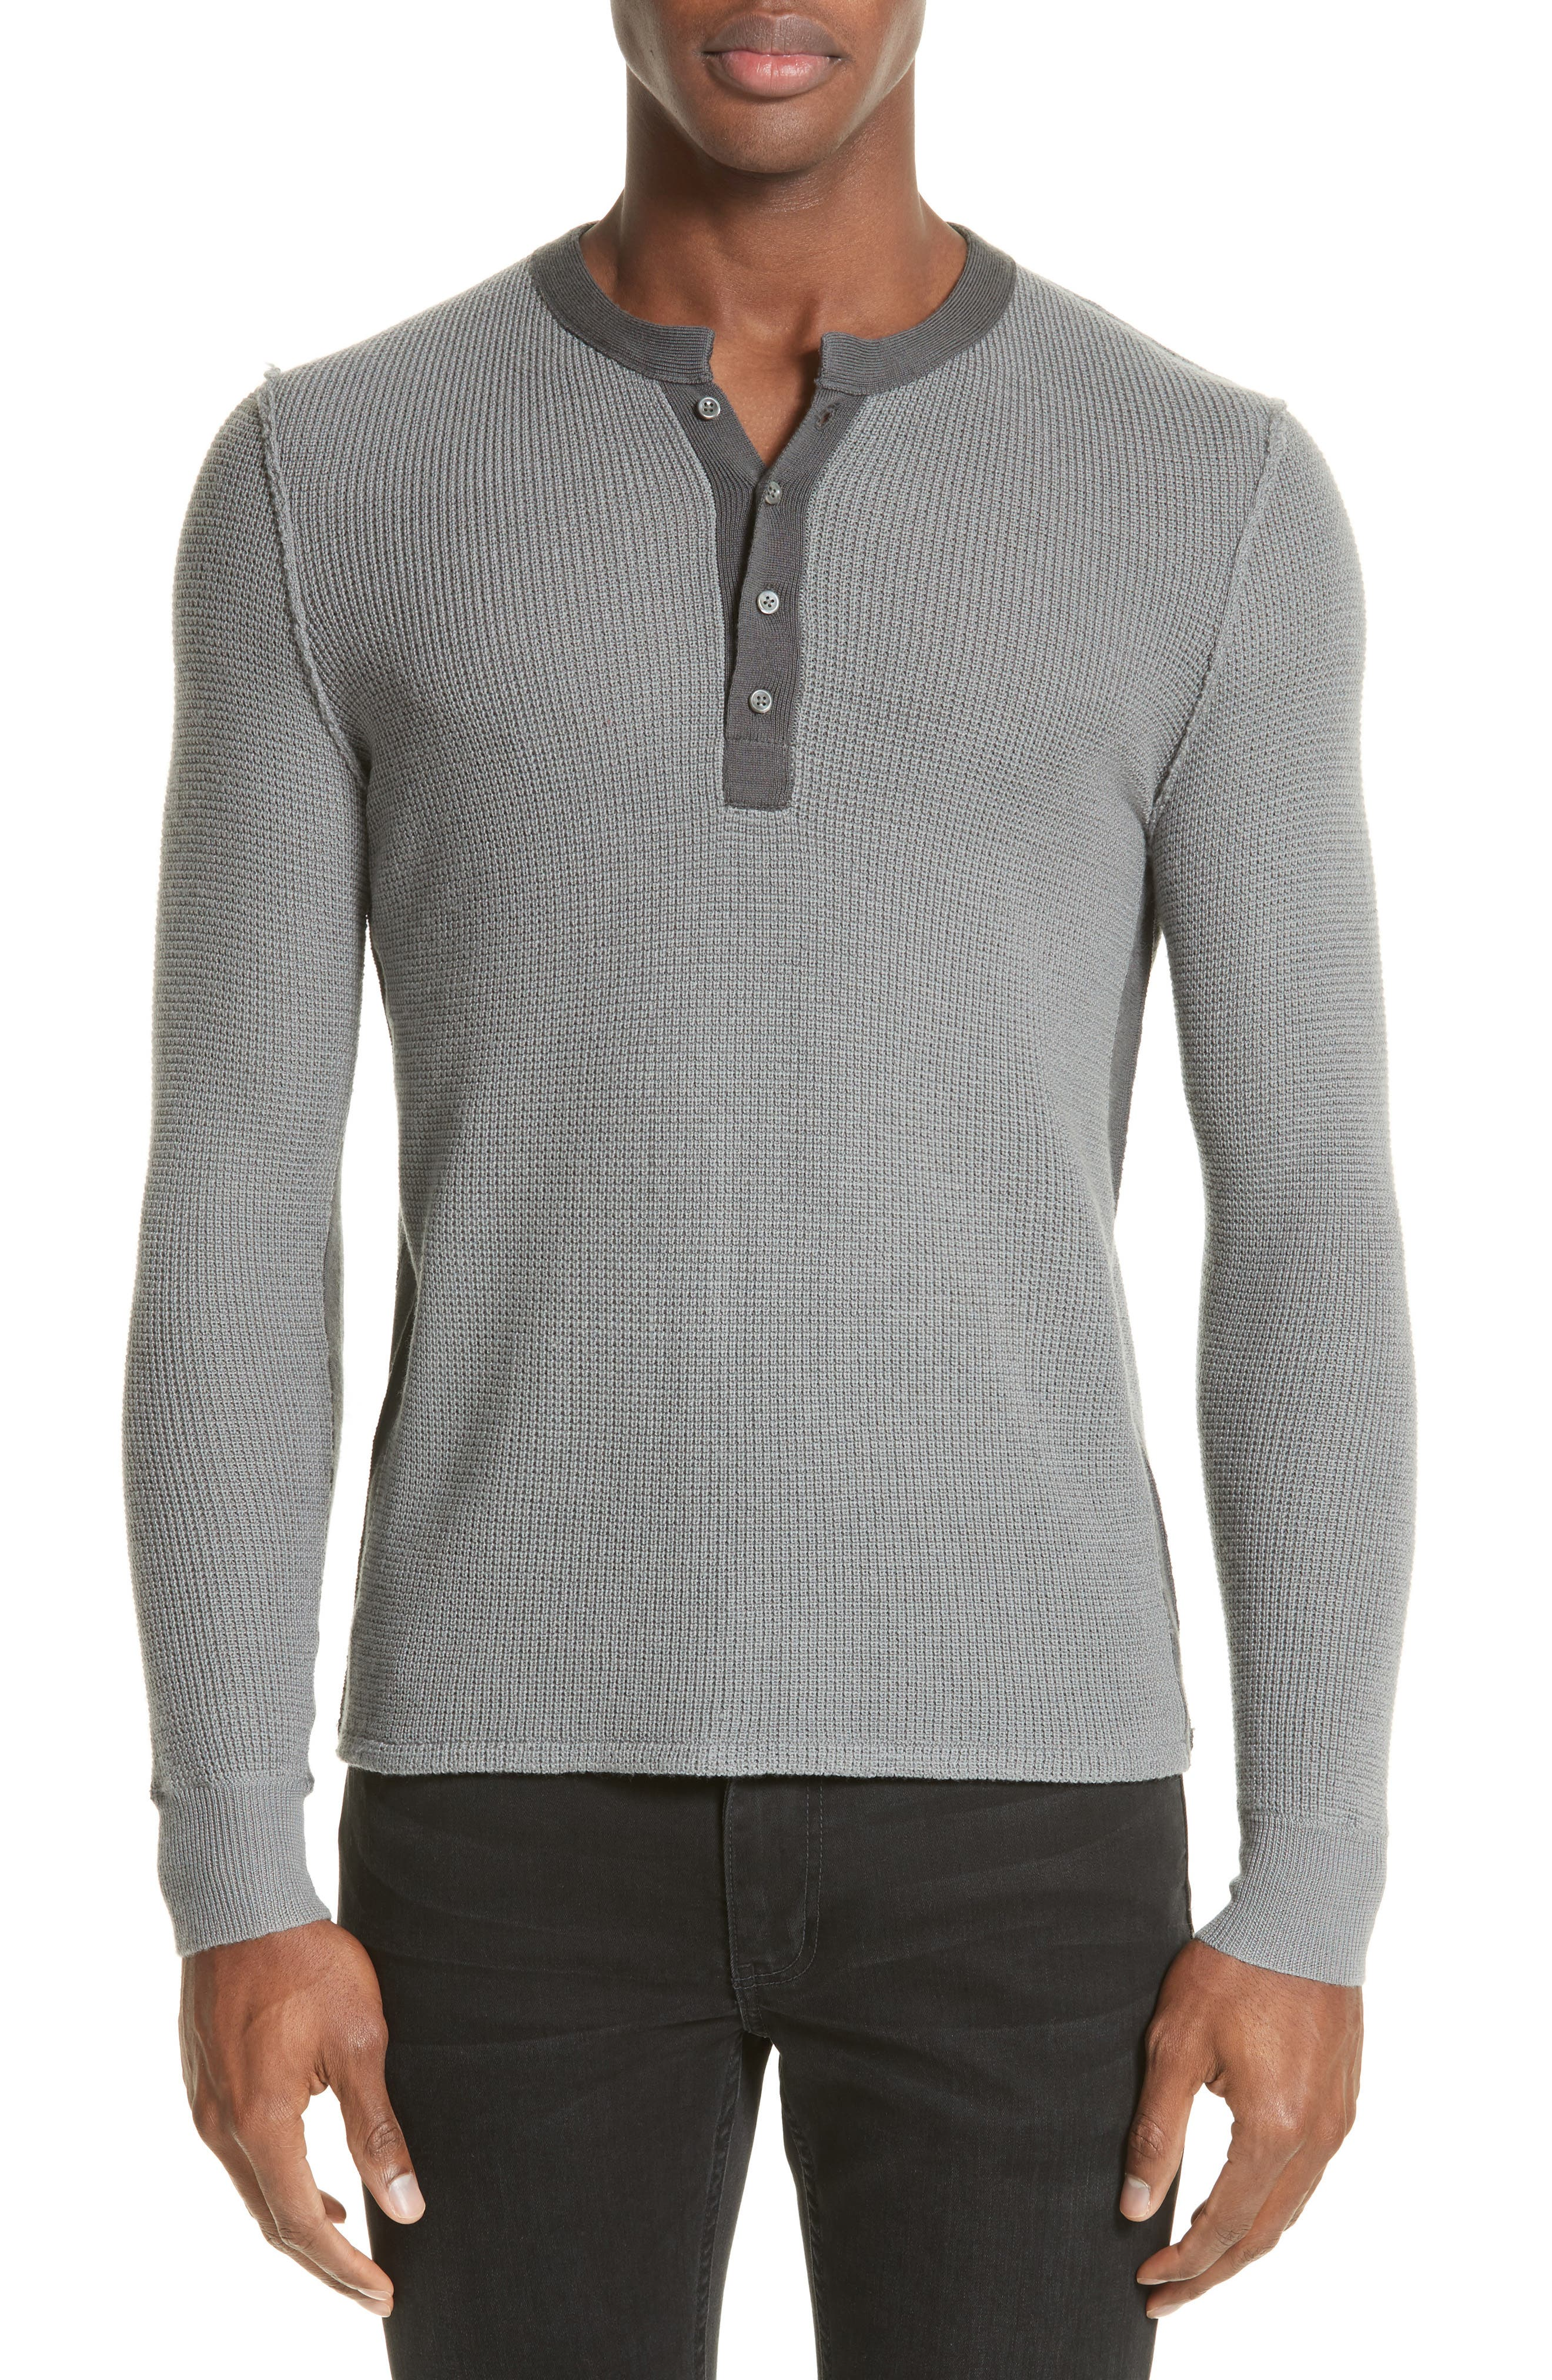 Zack Two-Tone Waffle Knit Wool Henley,                             Main thumbnail 1, color,                             Cement/ Carbon